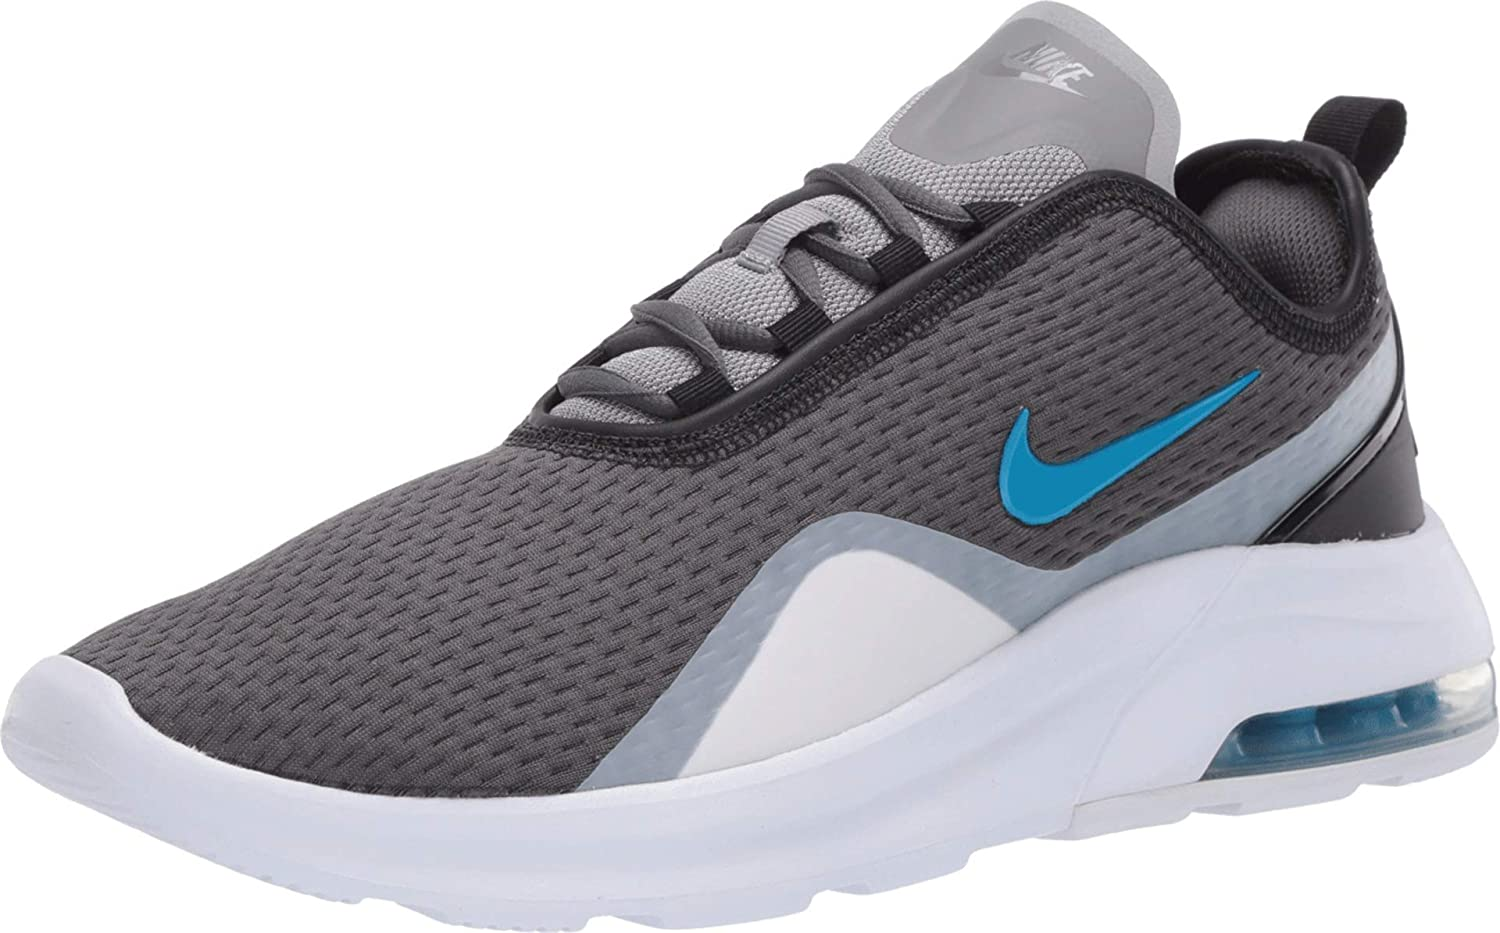 hueco Fugaz vestir  Amazon.com | Nike Air Max Motion 2 Es1 Running Shoes Mens Cd5392-001 |  Running